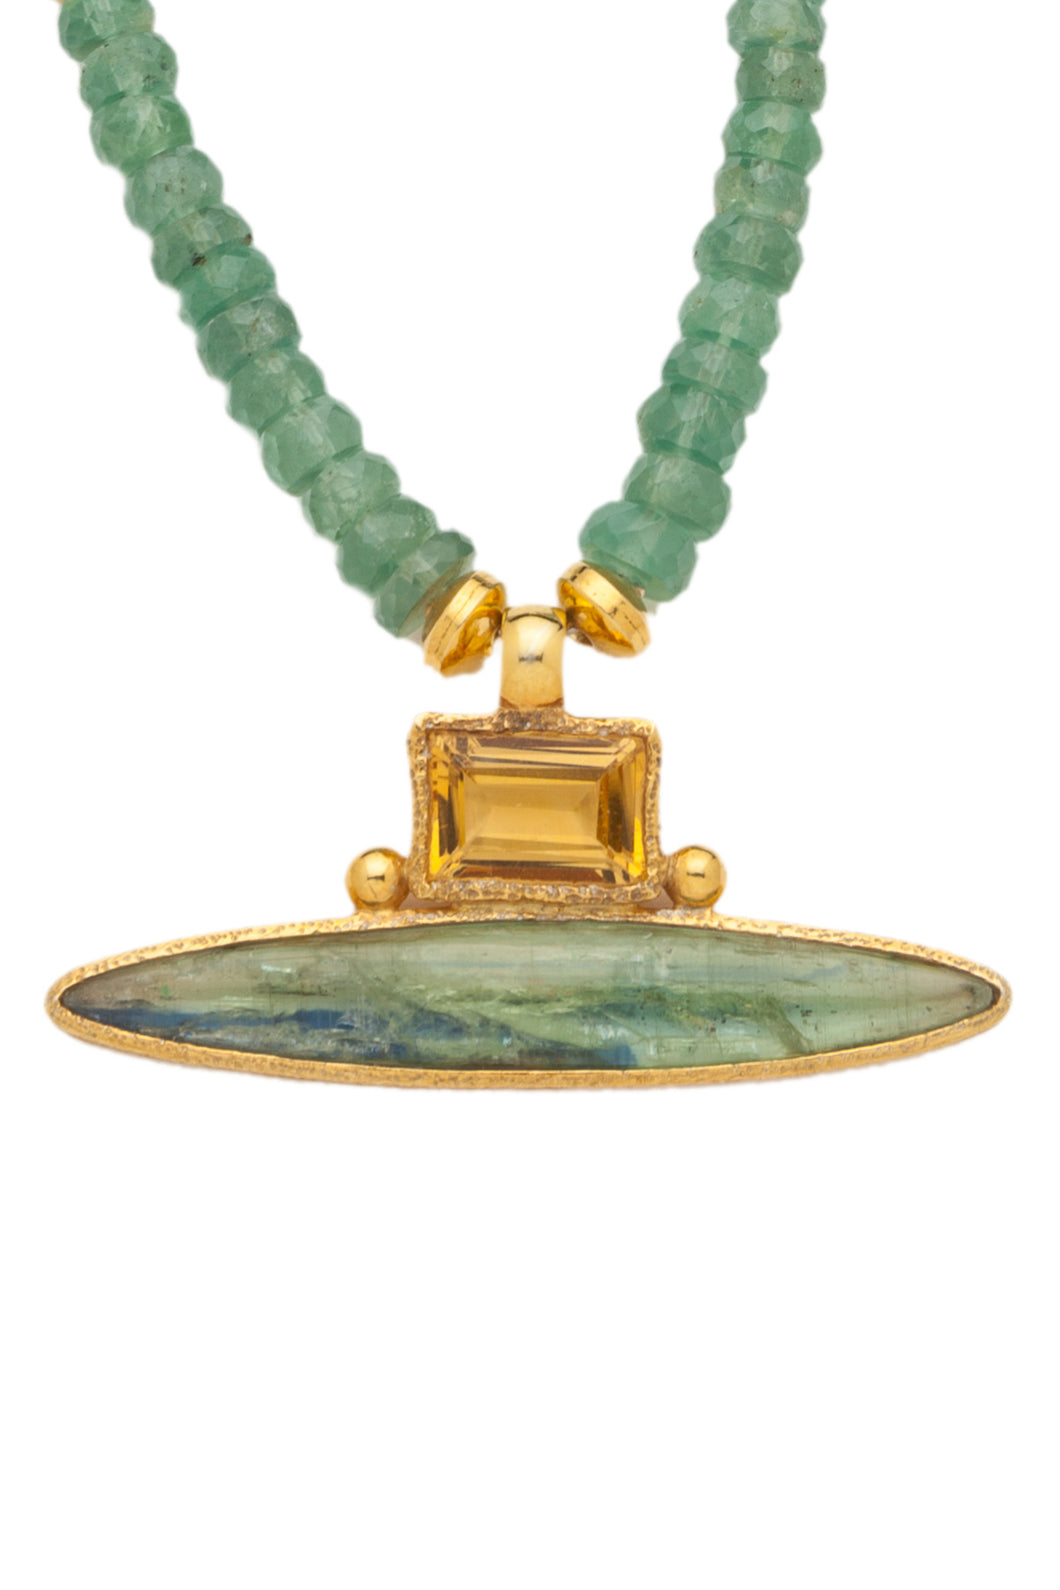 ONE OF A KIND Green Kyanite Necklace with Citrine and Green Kyanite Pendant set in 24kt gold vermeil NF280